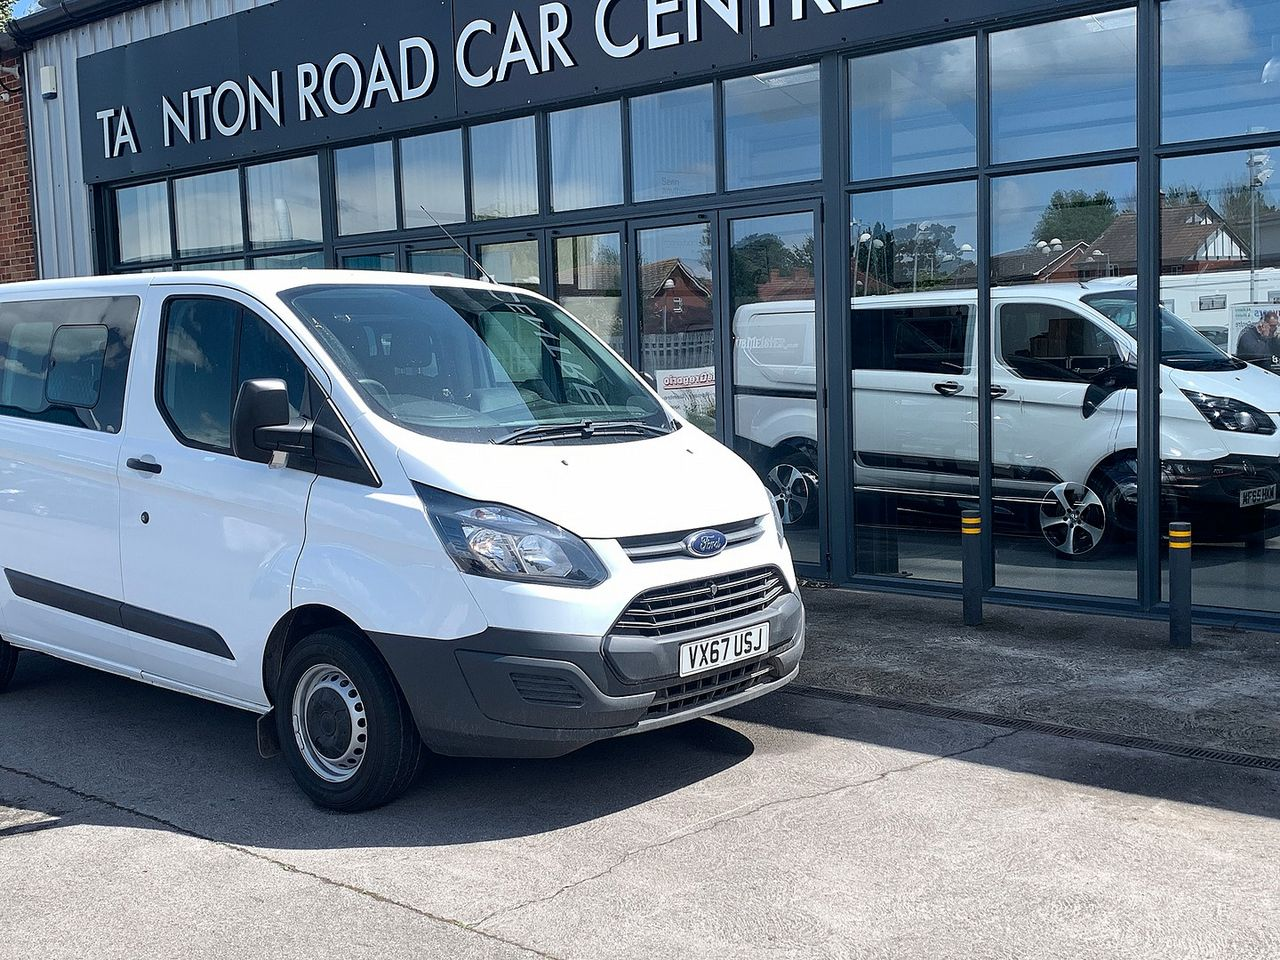 2017 FORD Transit Custom Crew Cab 2.0TD 105PS 270 FWD L1 - Picture 4 of 11